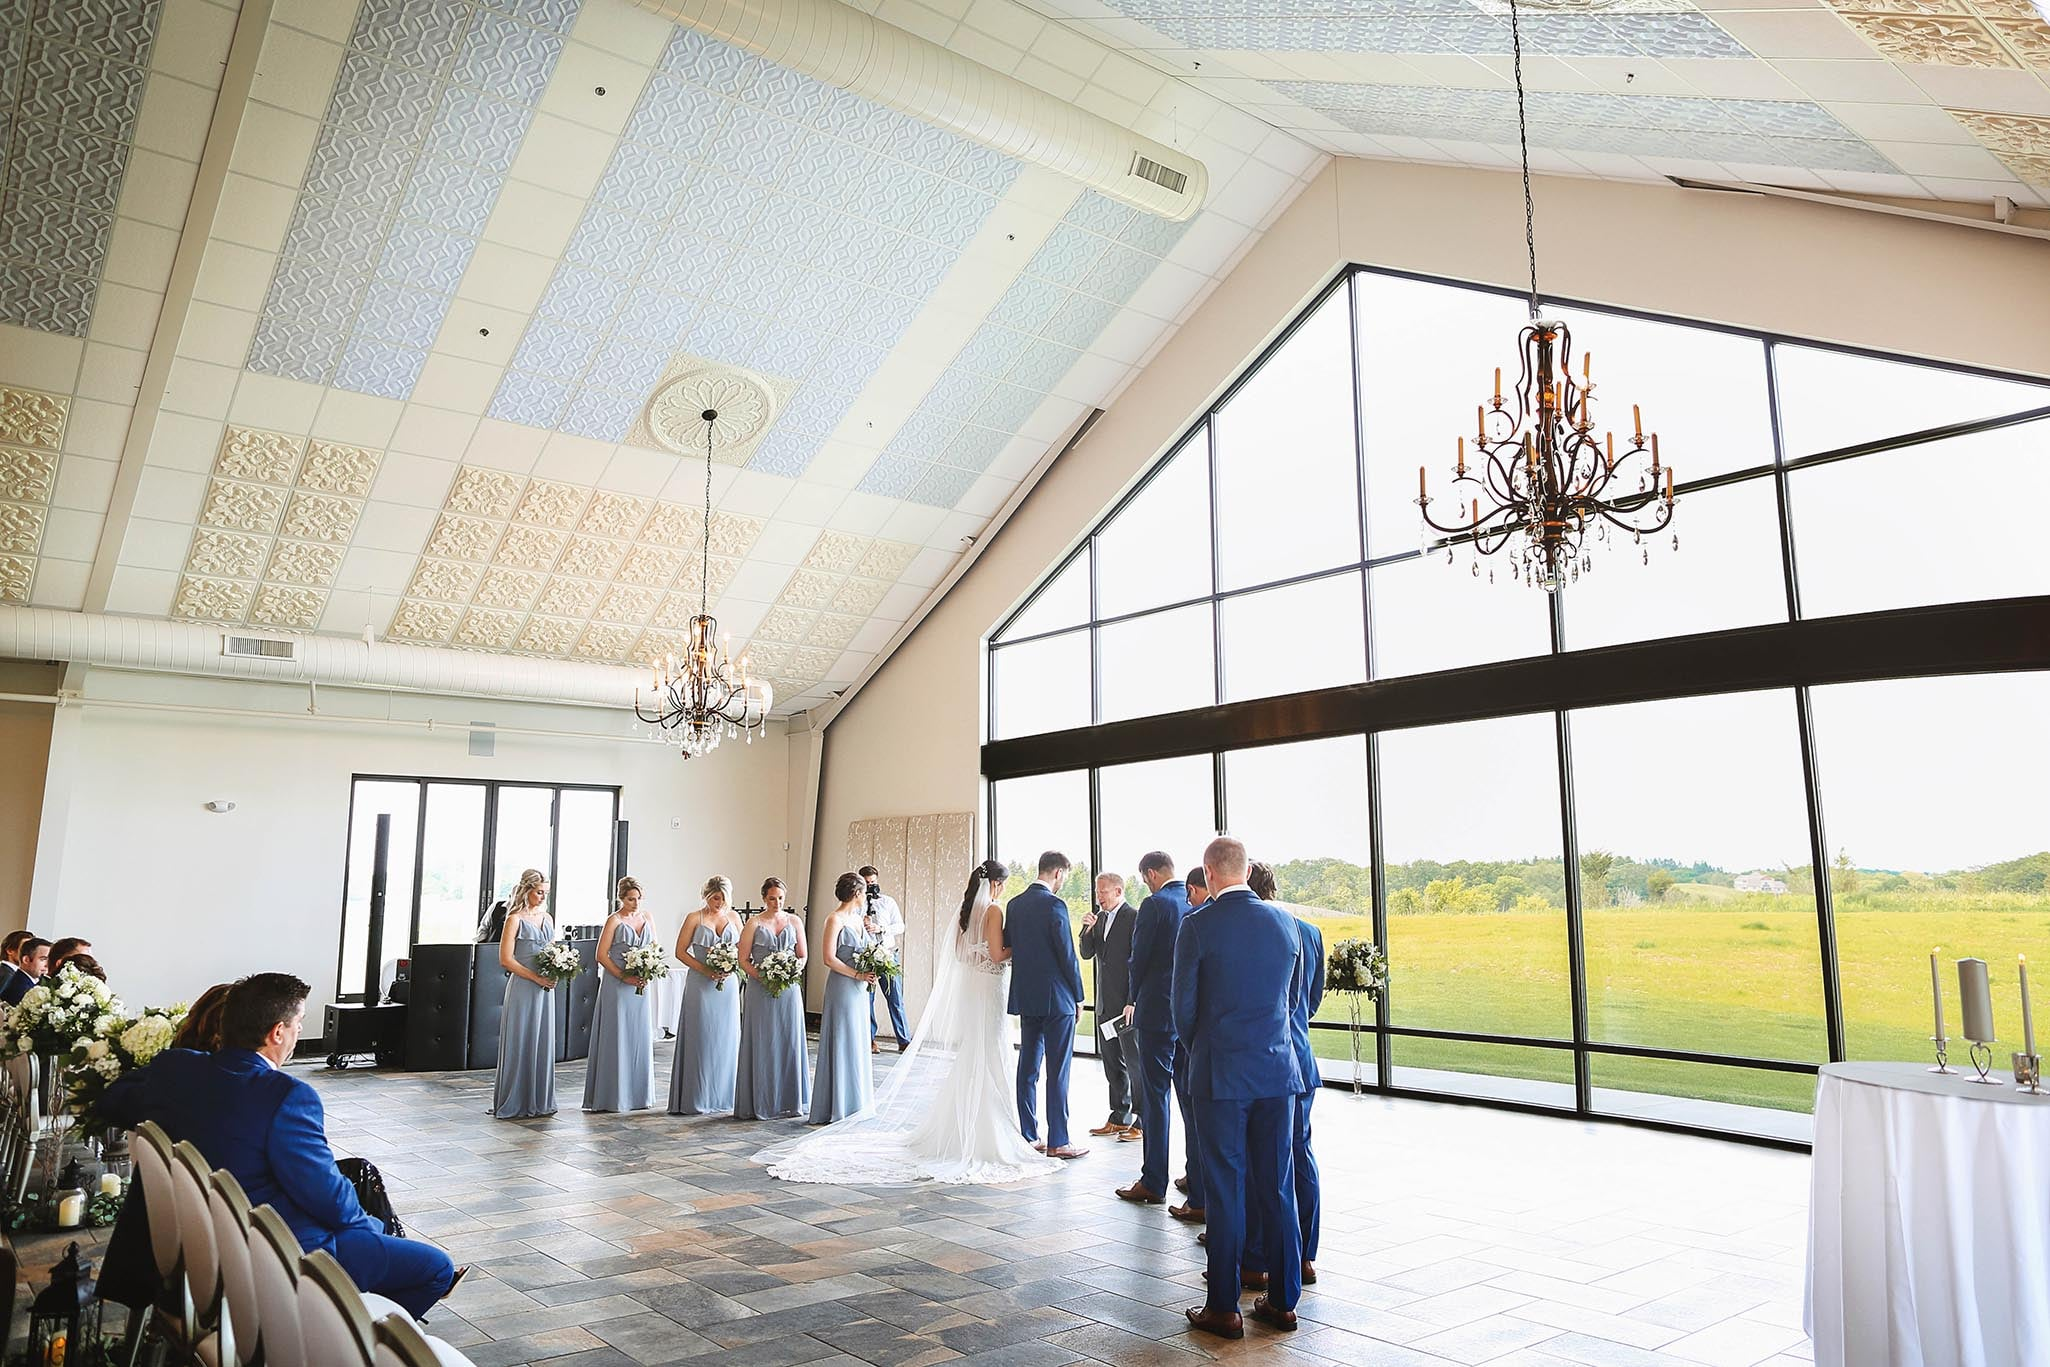 inside-ceremony-spaces-mn-bavaria-downs6.jpg